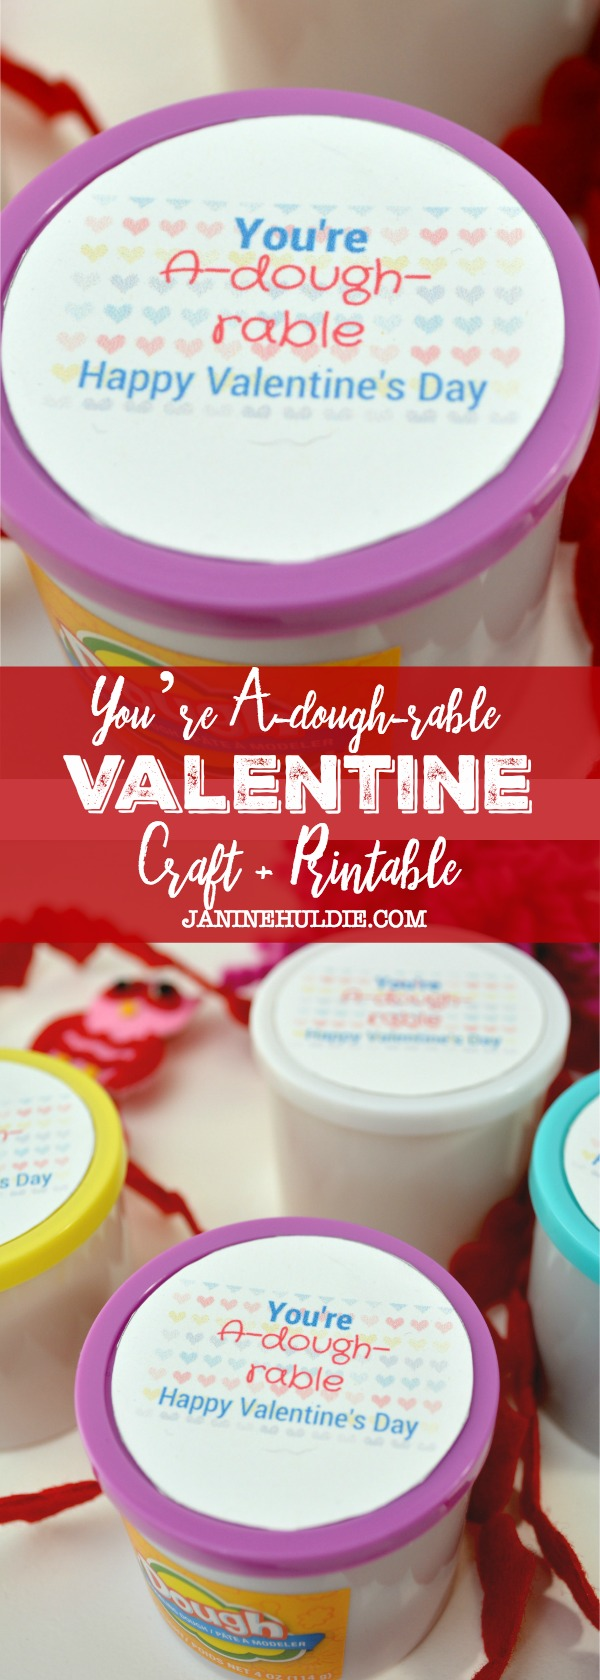 You're A-dough-rable Valentine Craft and Printable